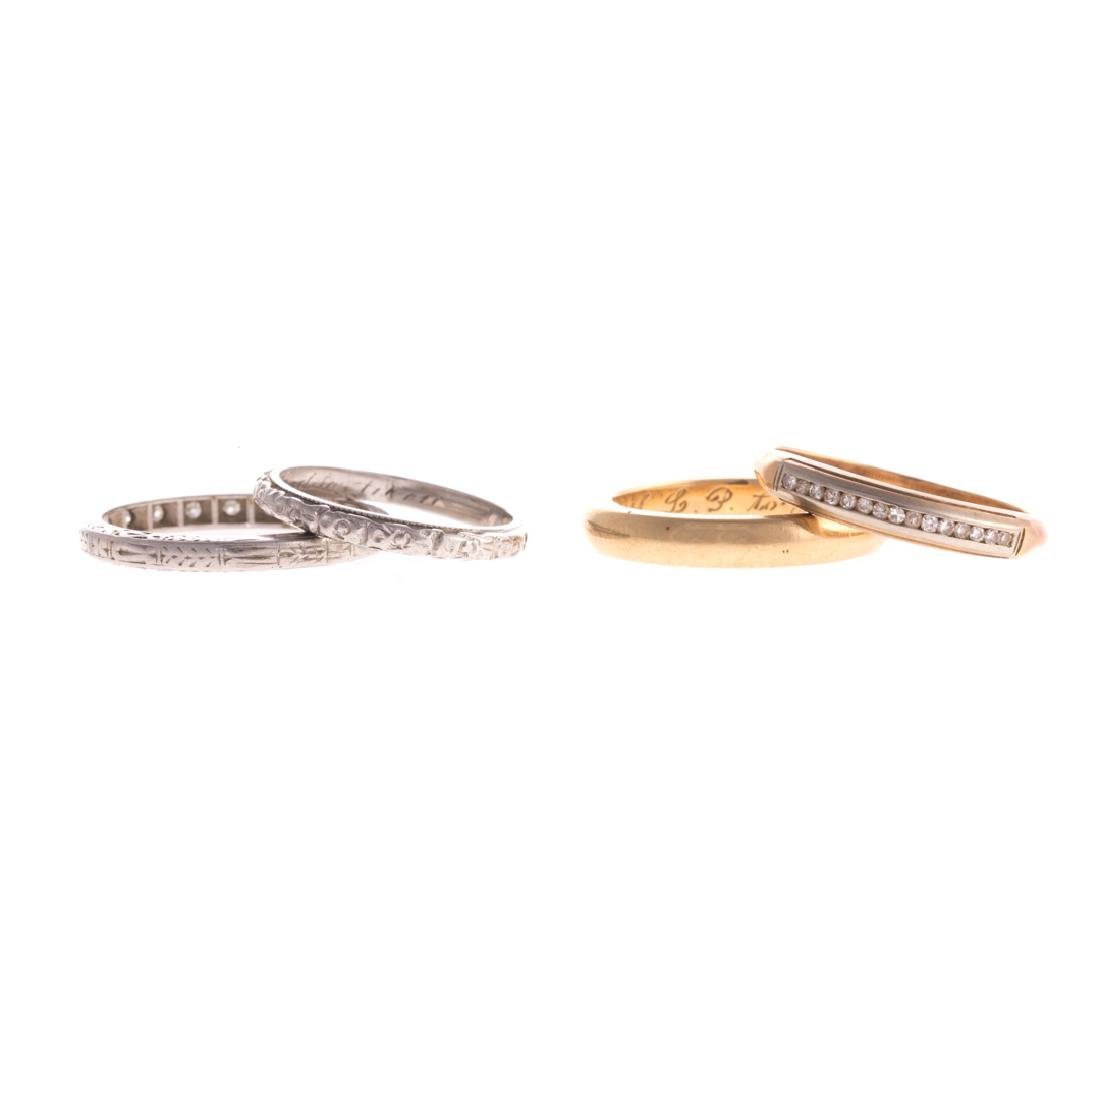 A Collection of Gold & Platinum Wedding Bands